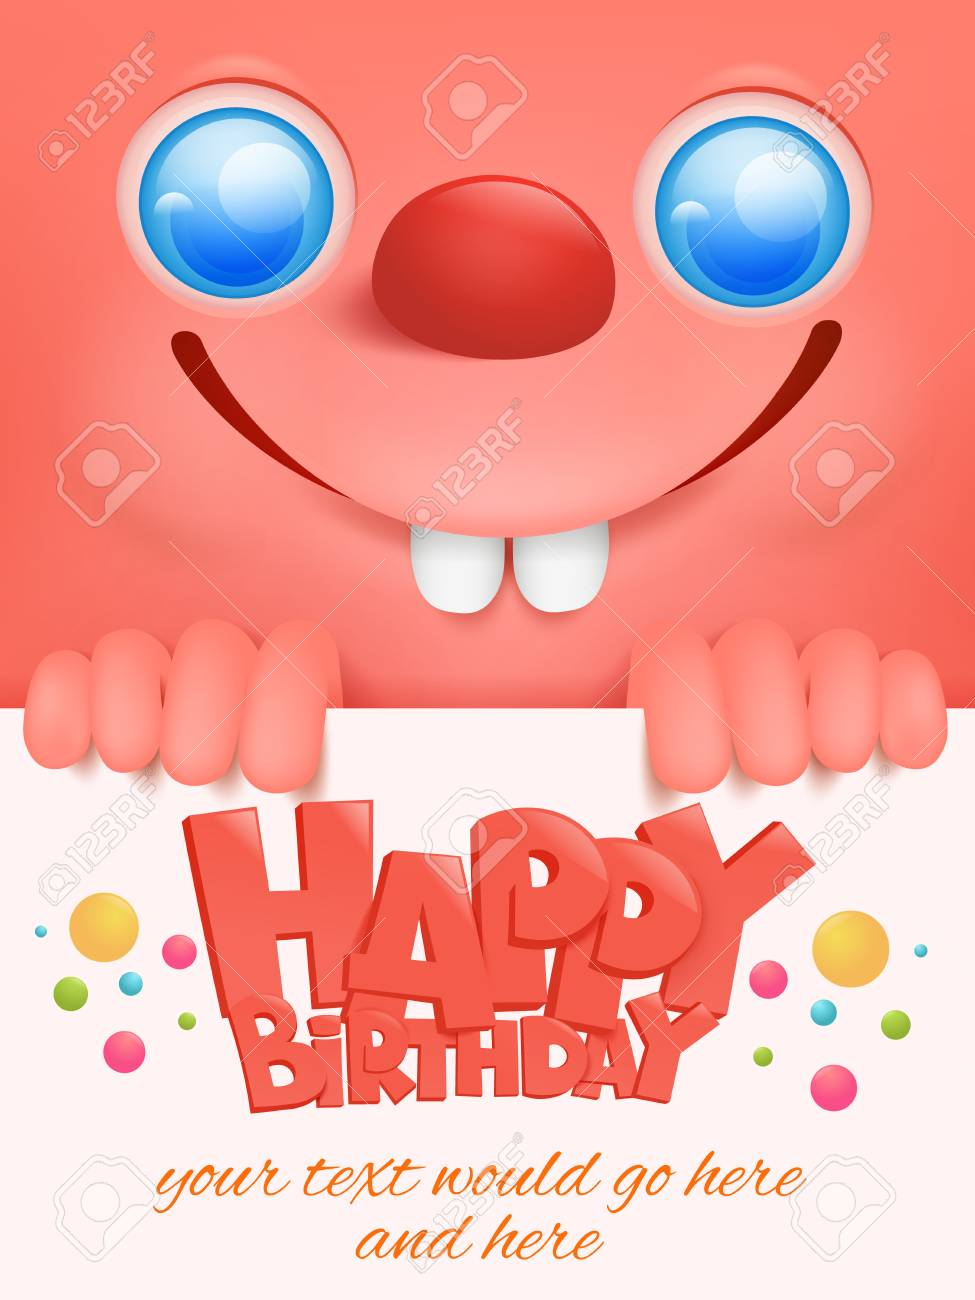 Greeting Card With Funny Pink Emoticon Face Template Happy Birthday Royalty Free Cliparts Vectors And Stock Illustration Image 86618507